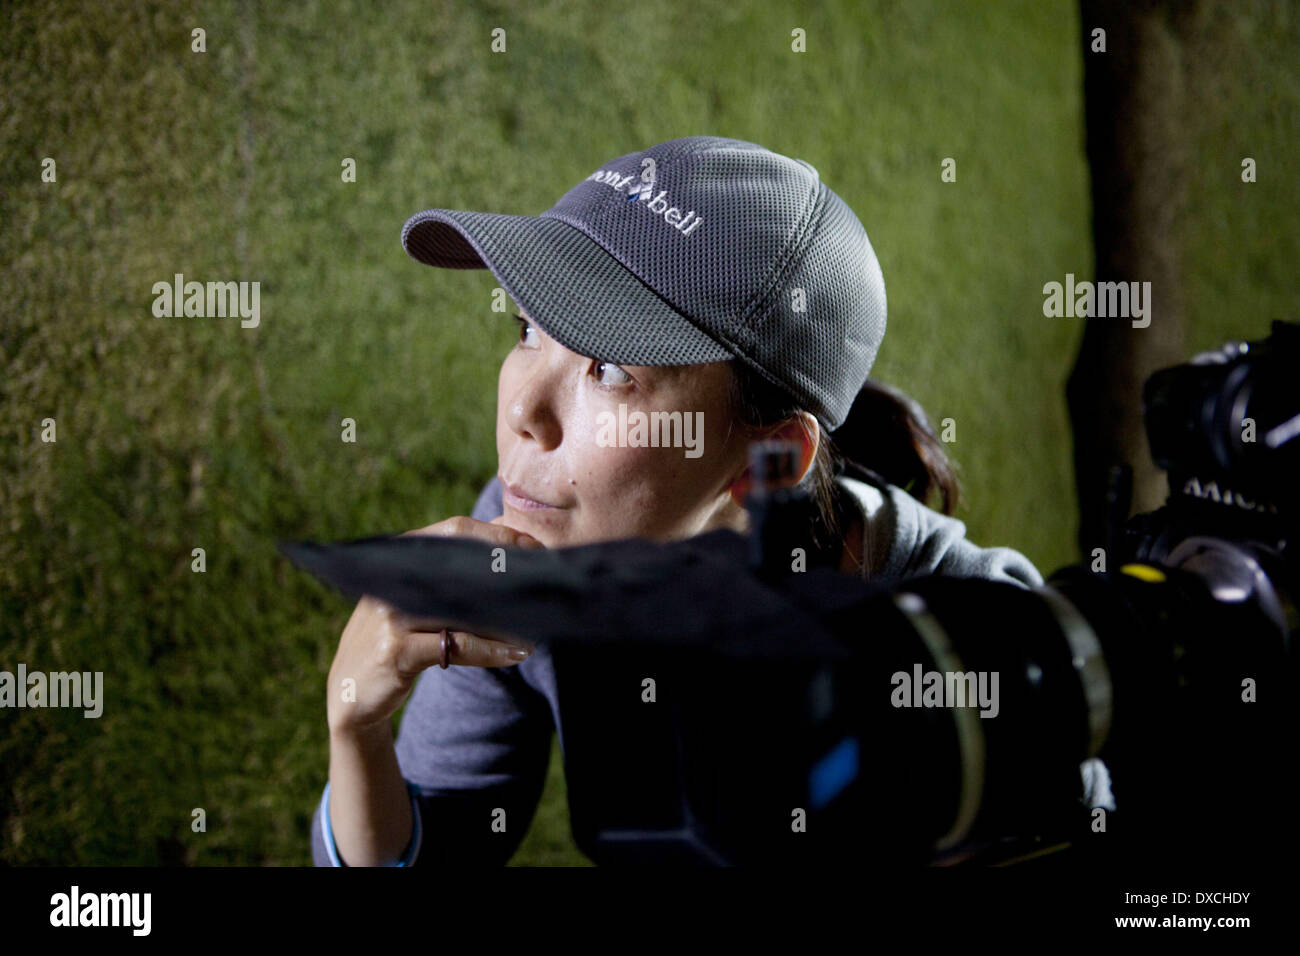 Kawase Naomi Stock Photos & Kawase Naomi Stock Images - Alamy